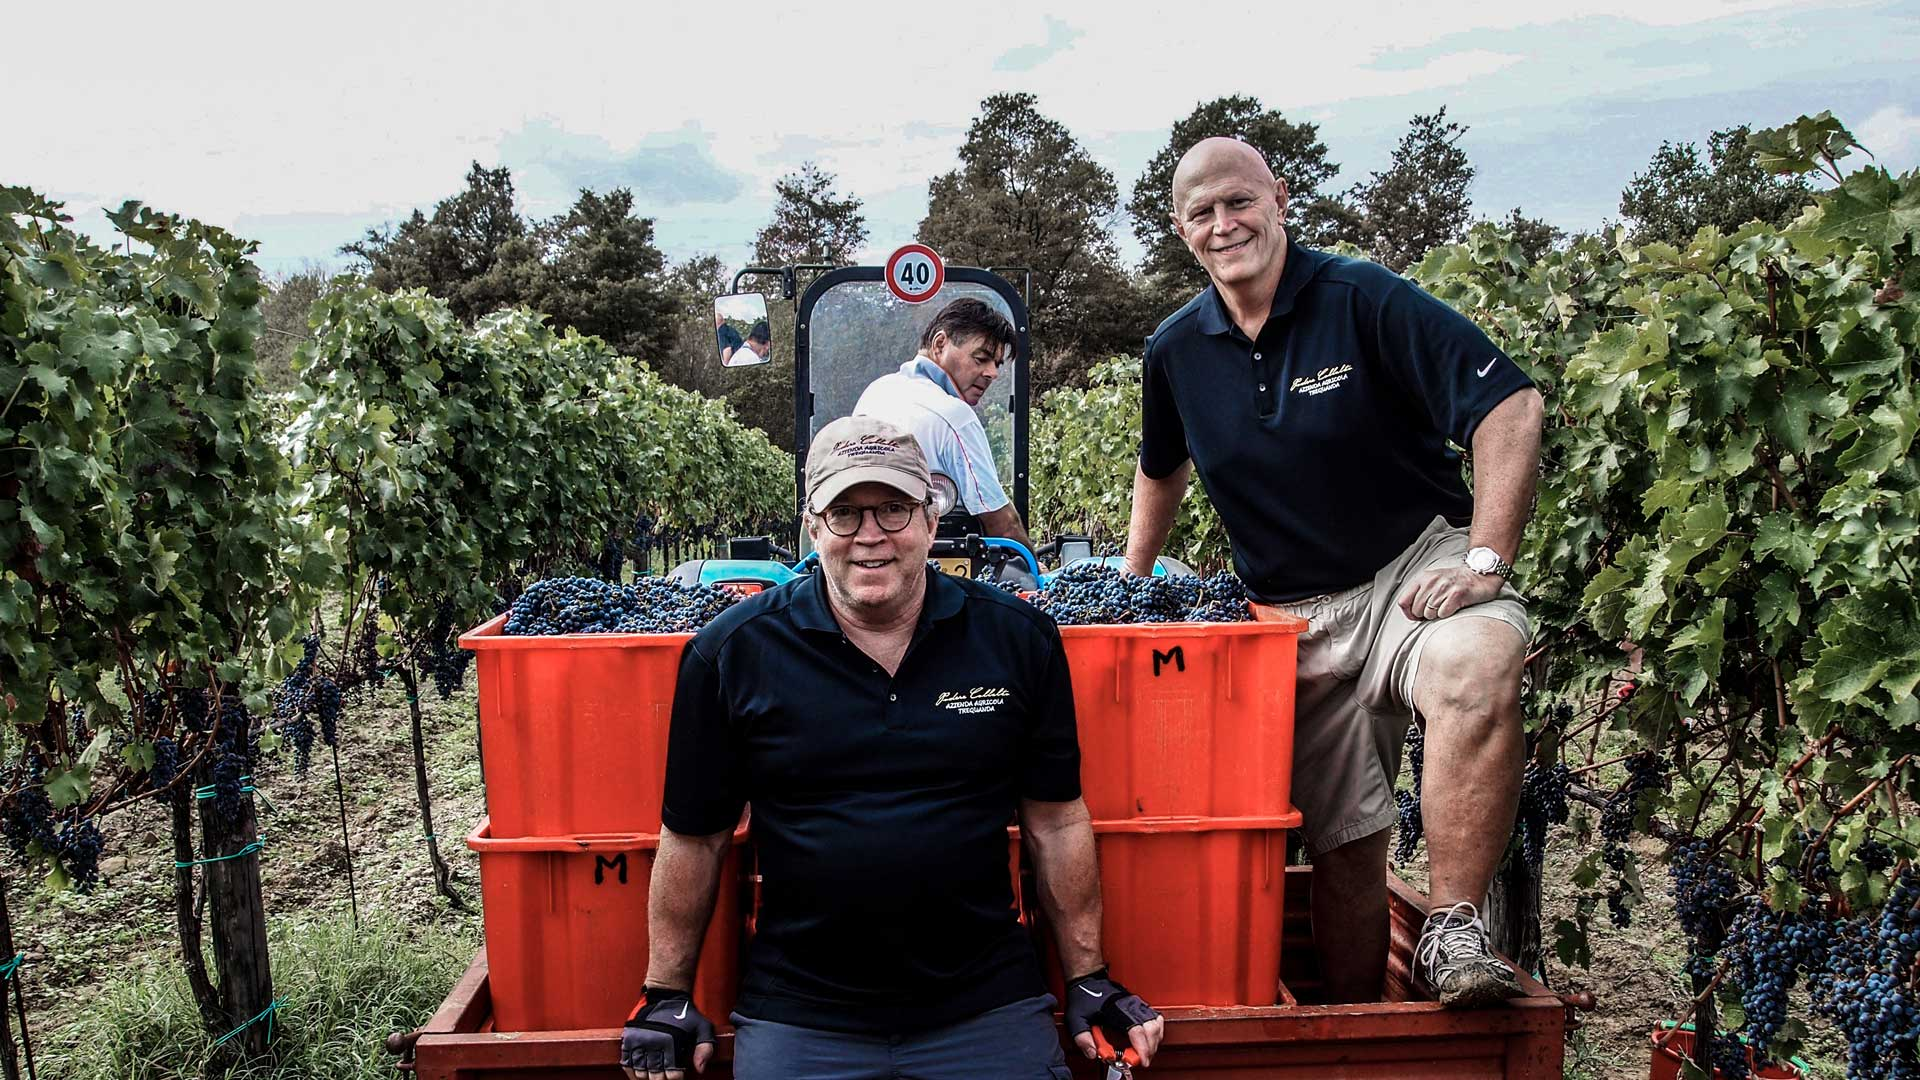 Copy of Harvesting grapes with our friends and family